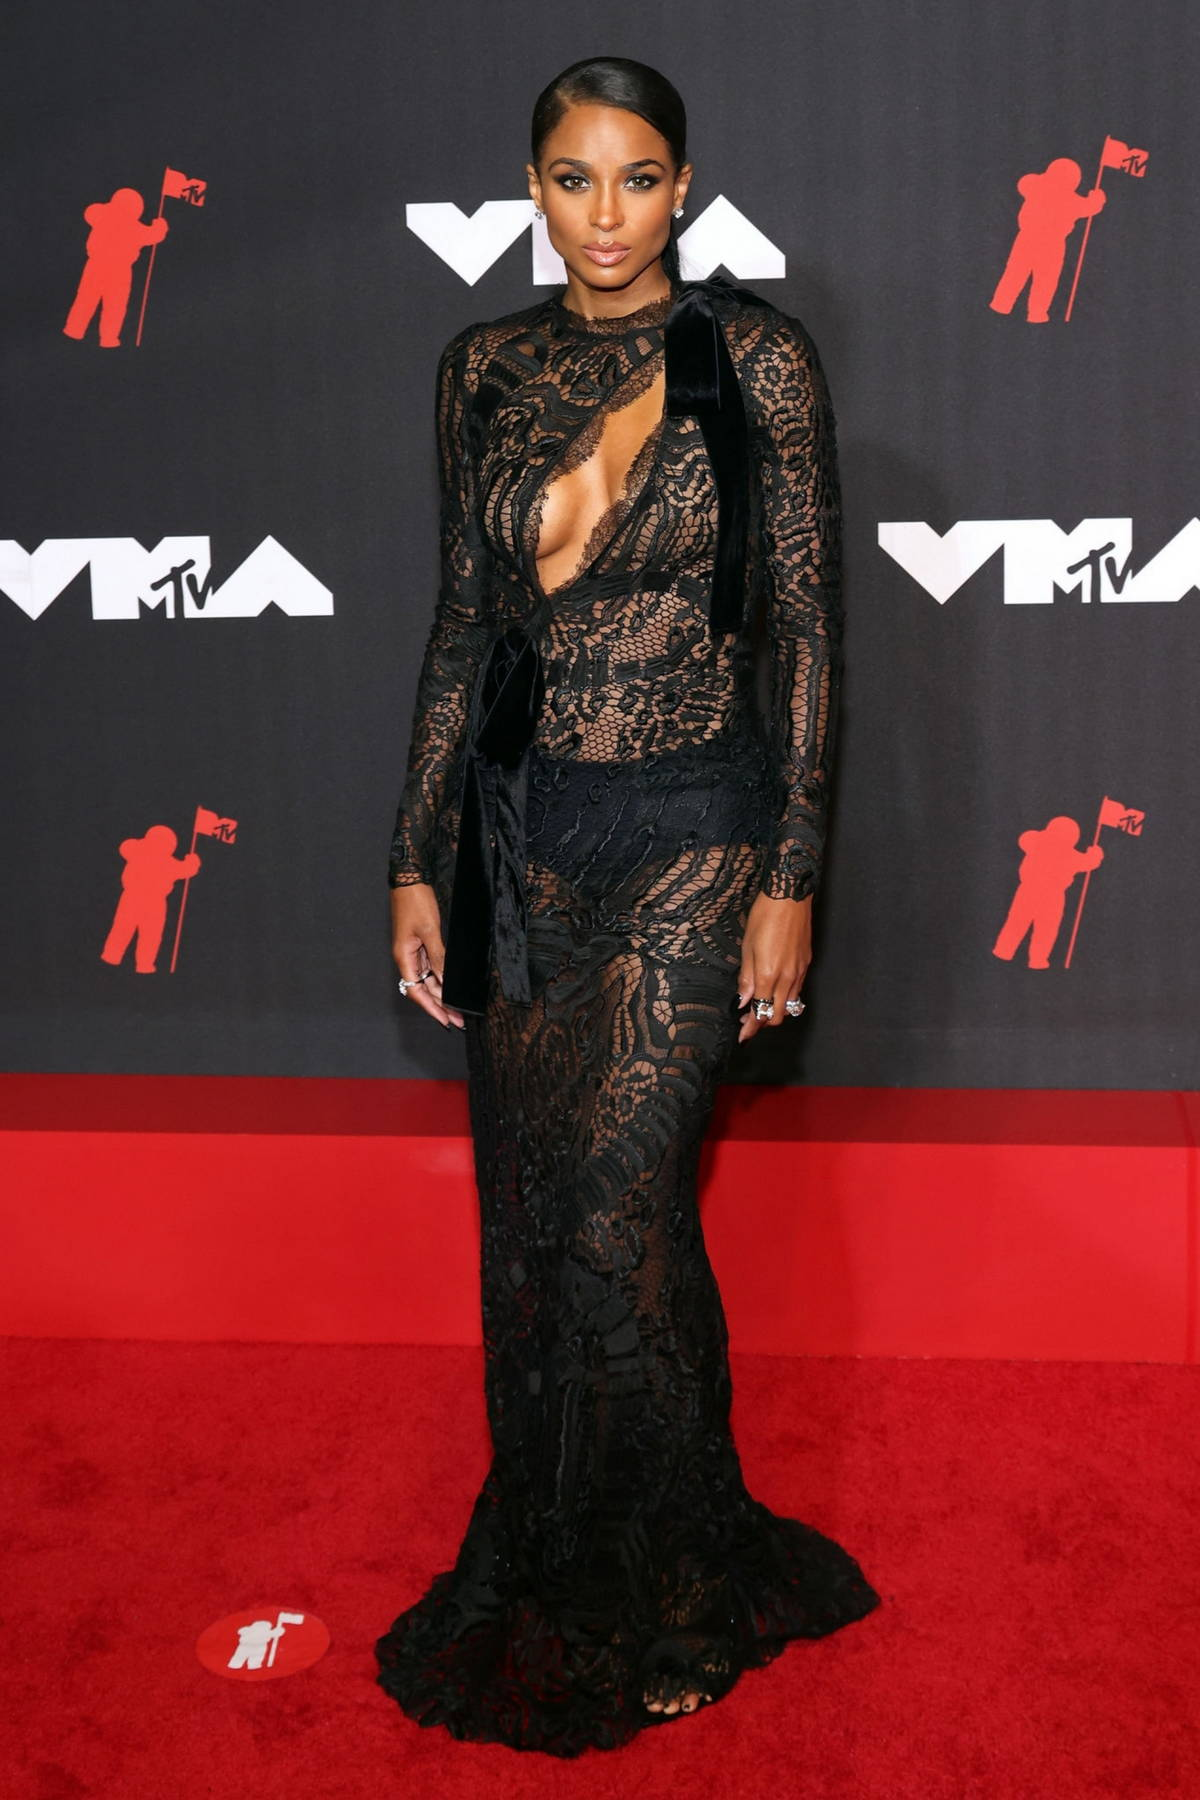 Ciara attends the 2021 MTV Video Music Awards at Barclays Center in Brooklyn, New York City